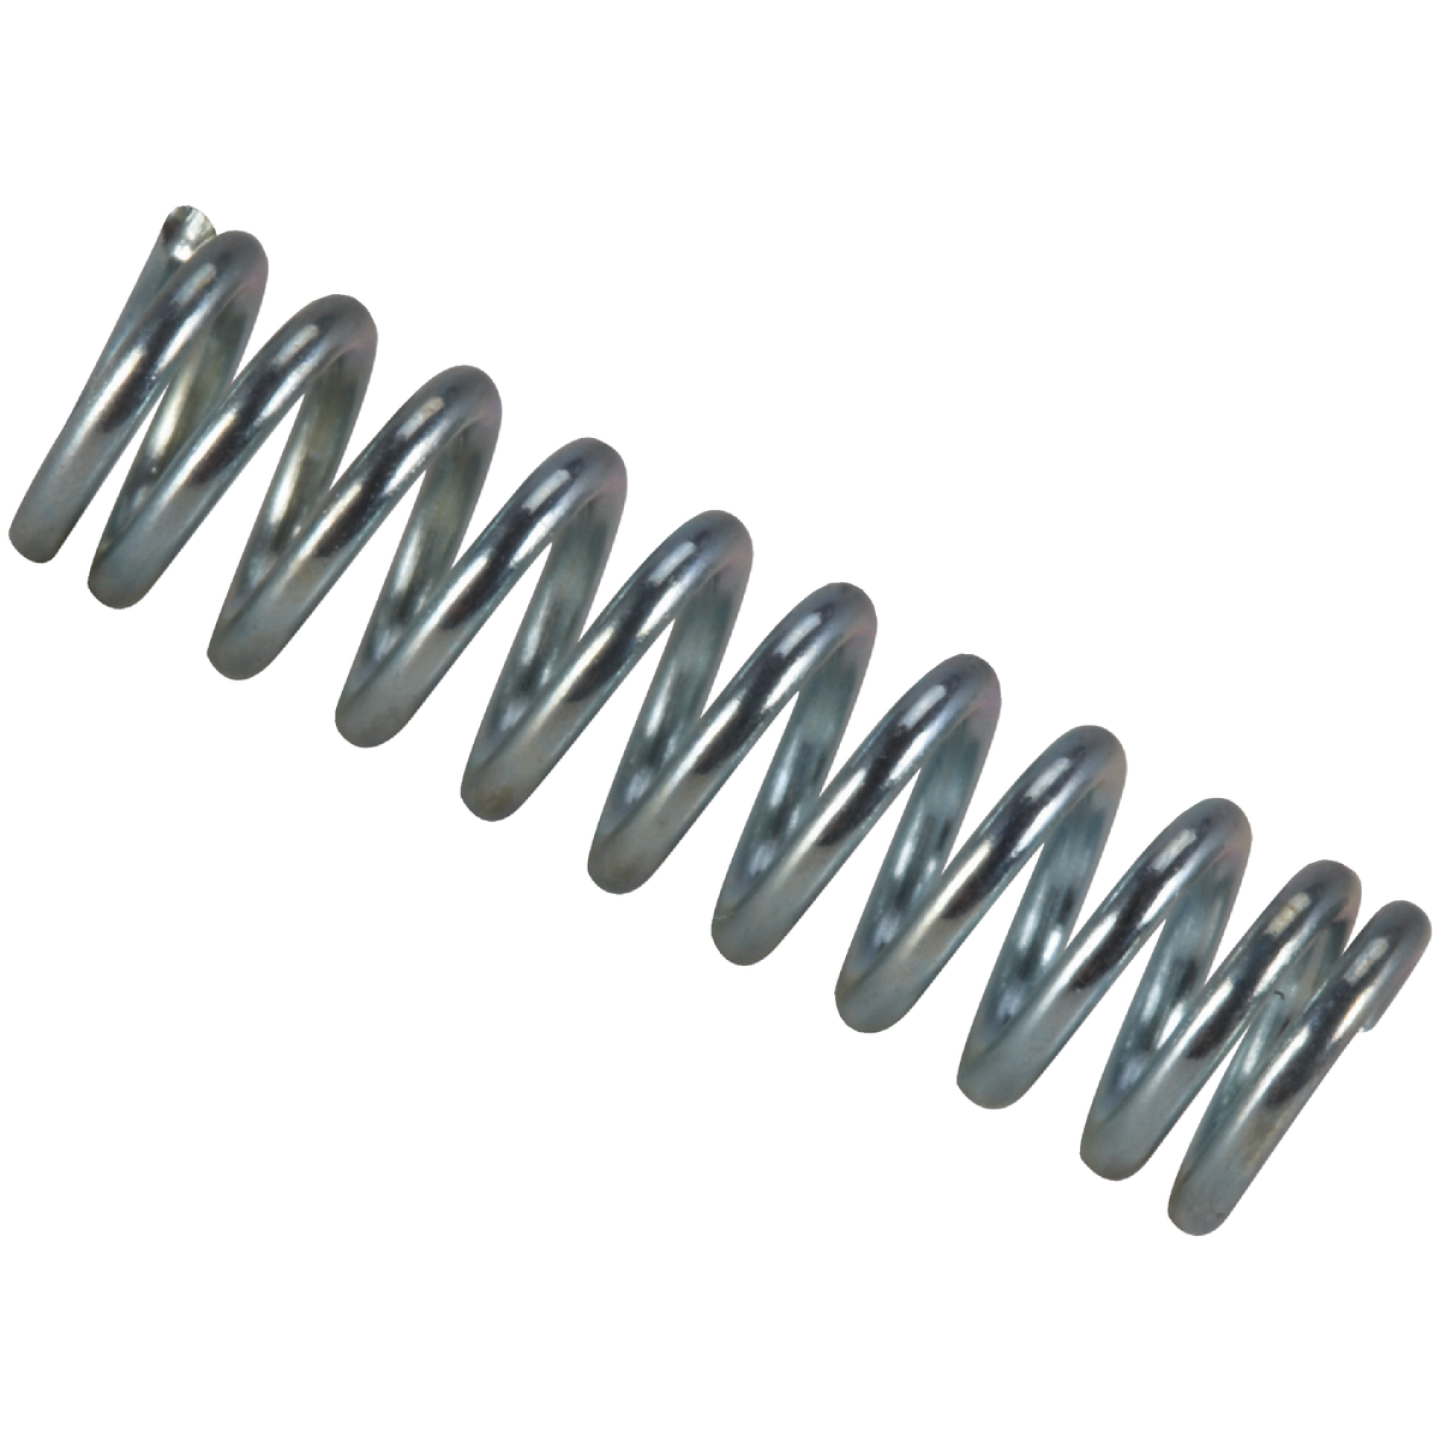 Century Spring 1 In. x 9/16 In. Compression Spring (2 Count) Image 1